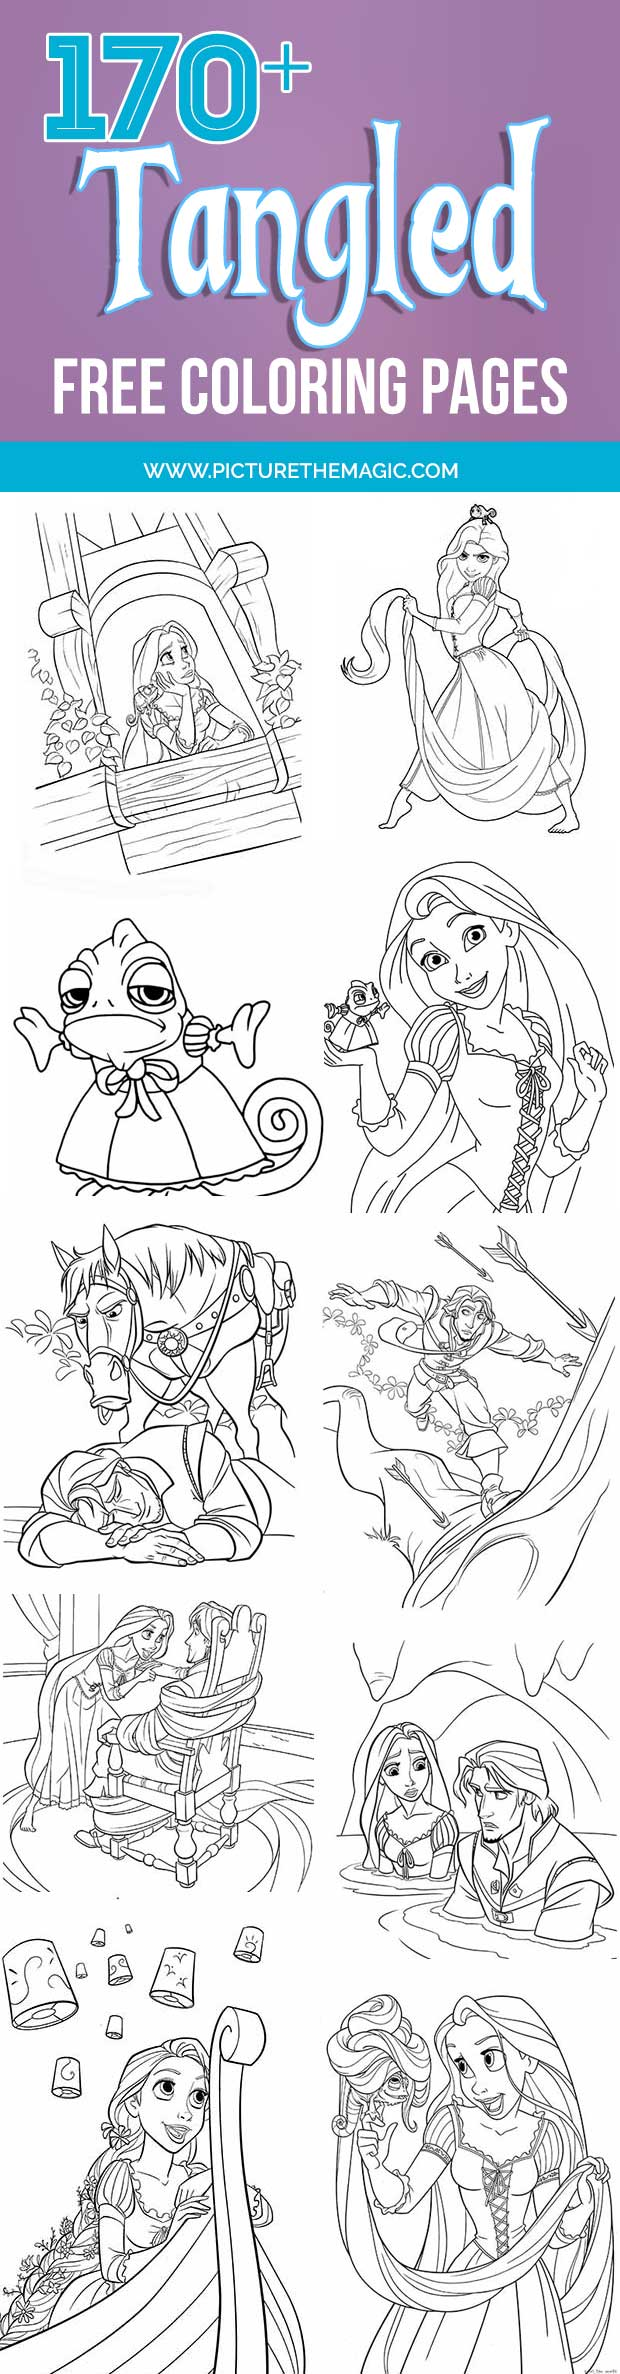 Wow! Over 170 FREE Tangled Coloring Pages! Includes Rapunzel coloring pages, Flynn Rider, Max and Pascal too